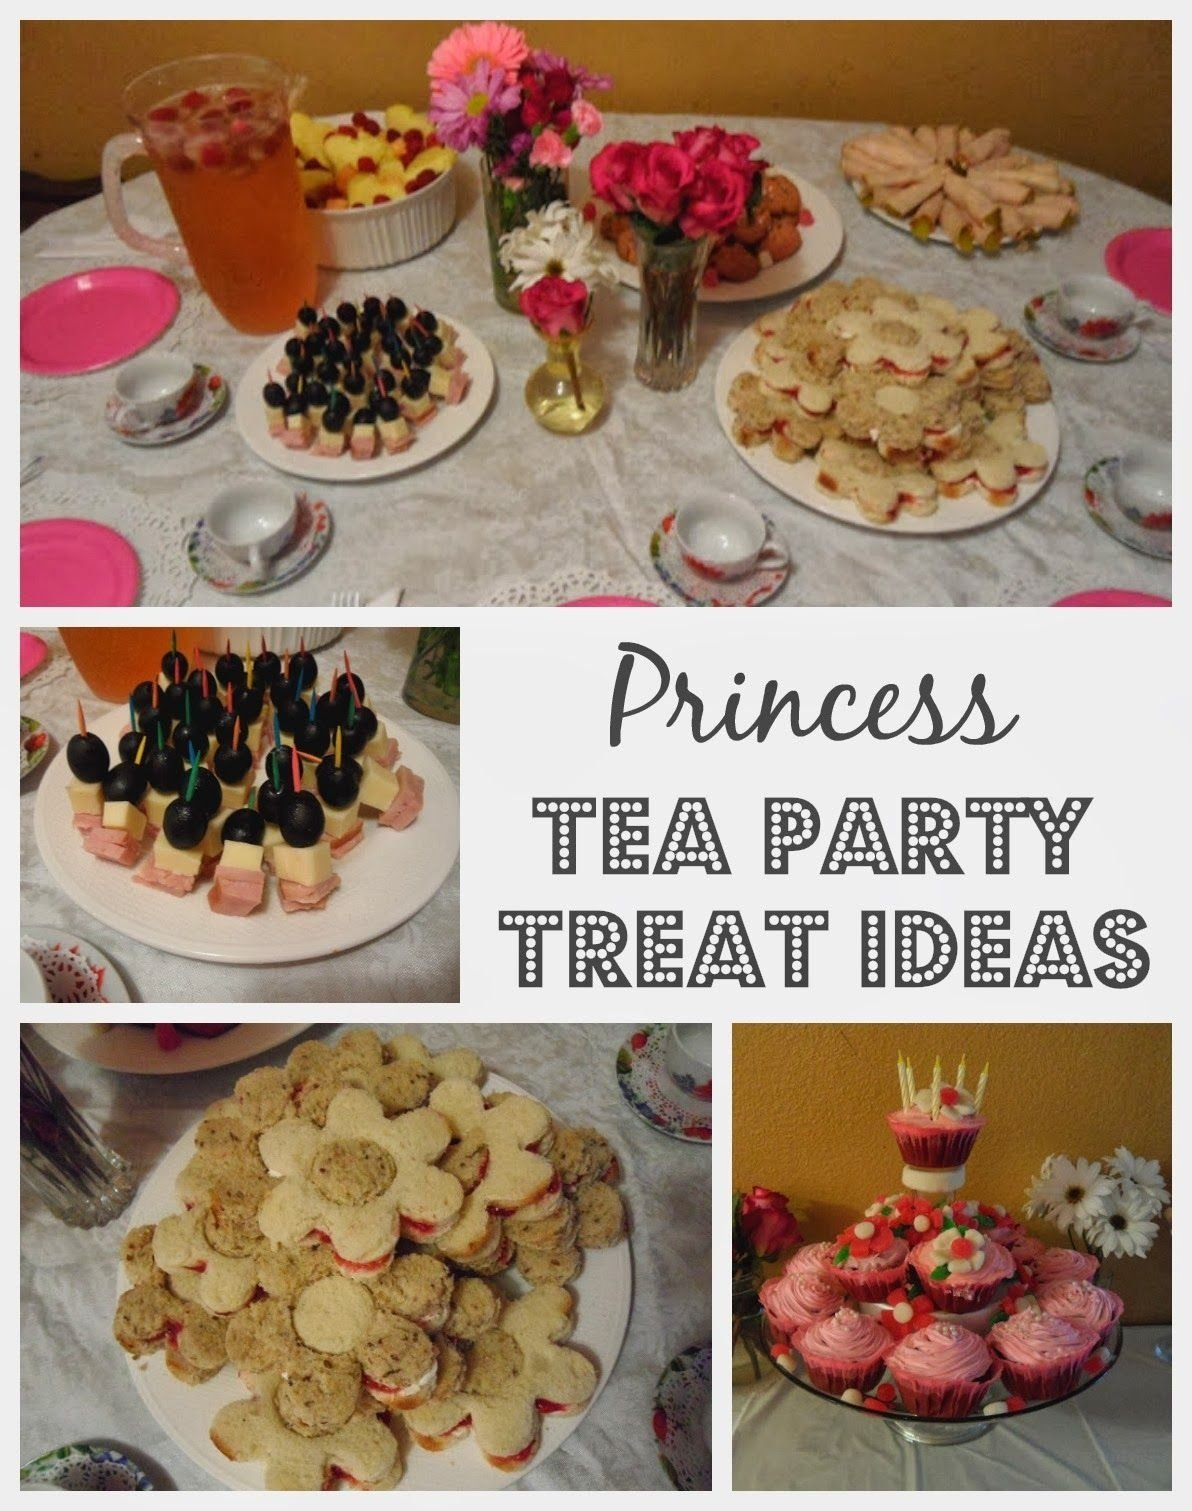 10 Nice Princess Tea Party Food Ideas princess tea party birthday ideas princess tea party tea party